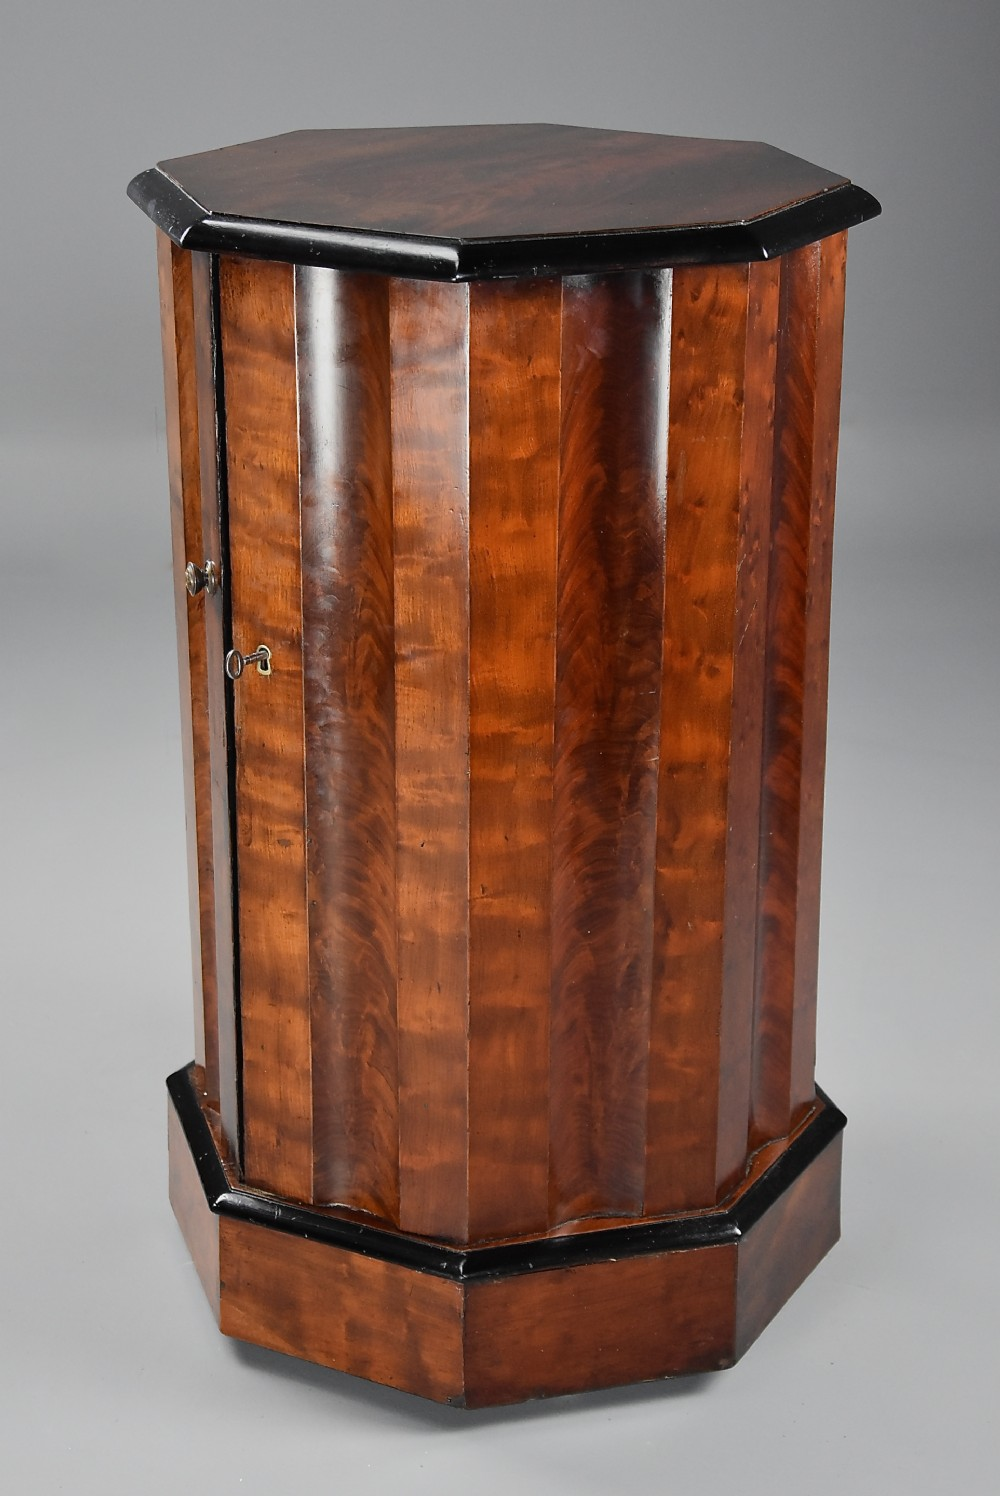 mid 19th century mahogany octagonal pot cupboard of fine patina and large proportions